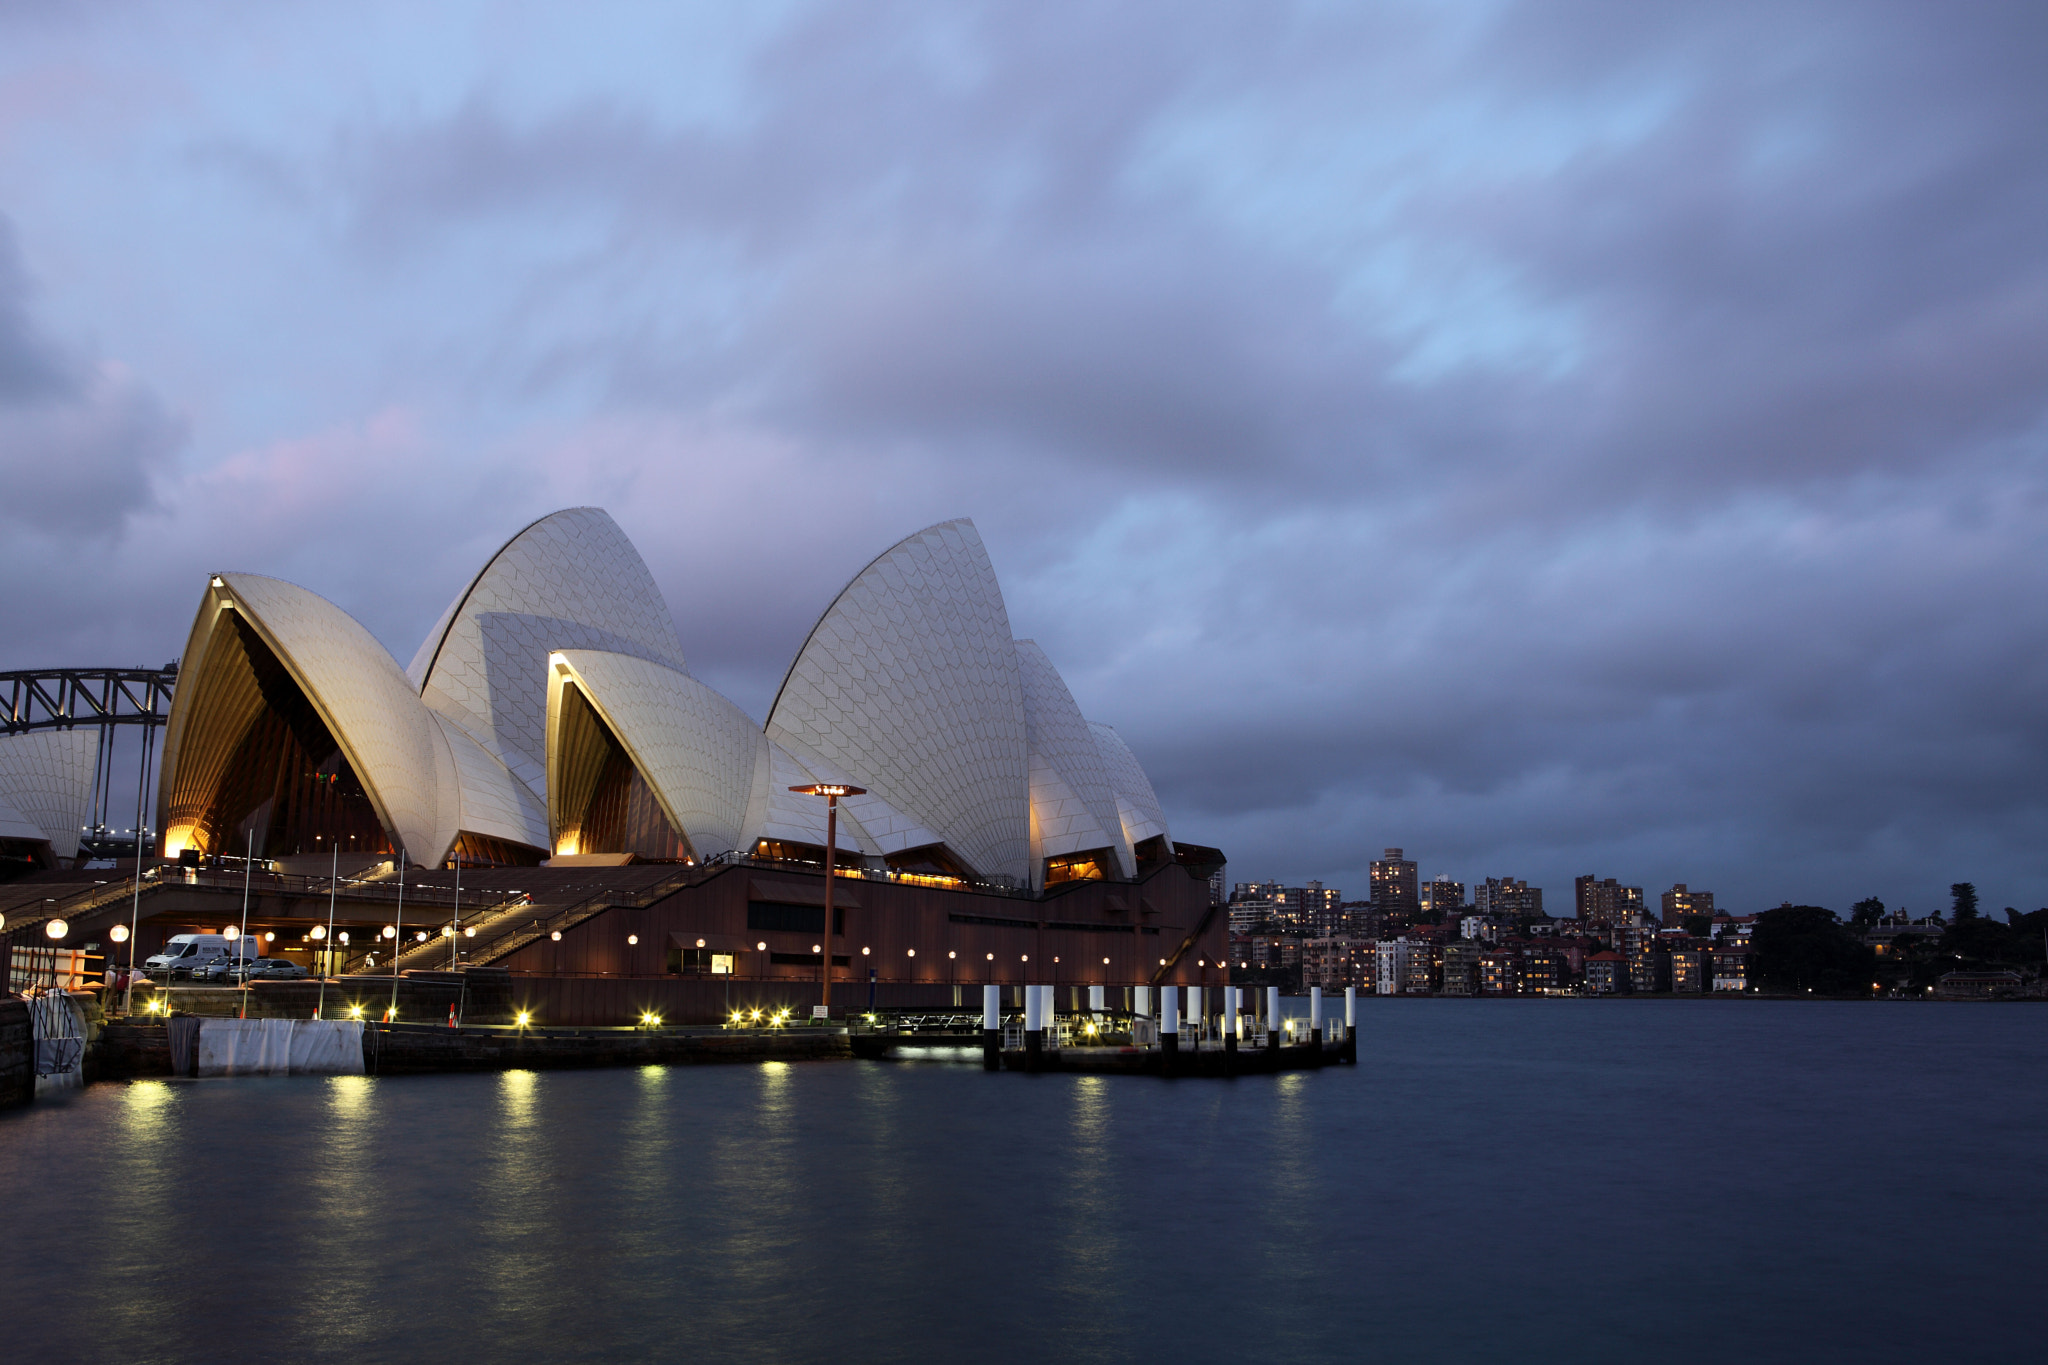 Photograph Opera House by Fan Yang on 500px